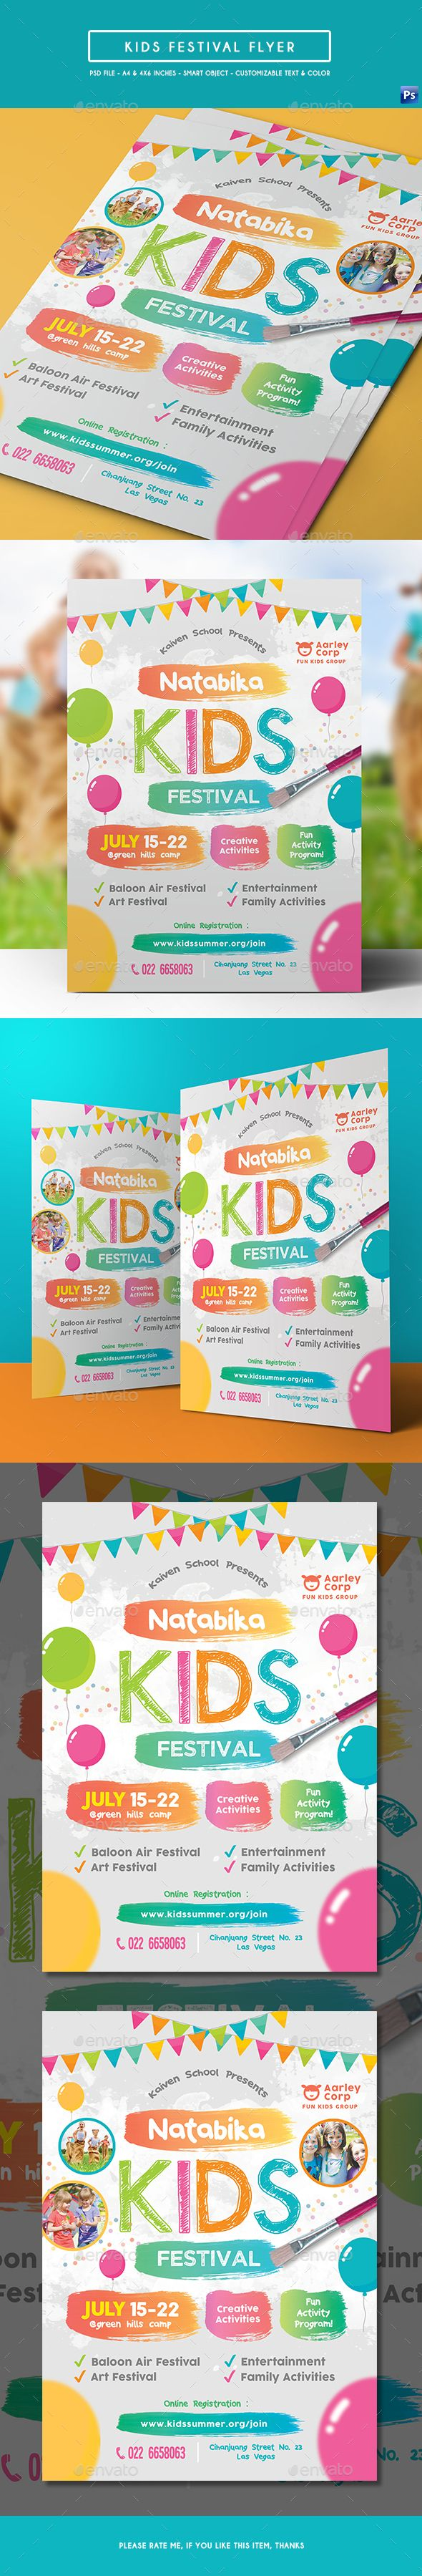 Alternative Family Fun Day Flyers | Flyer template, Alternative ...